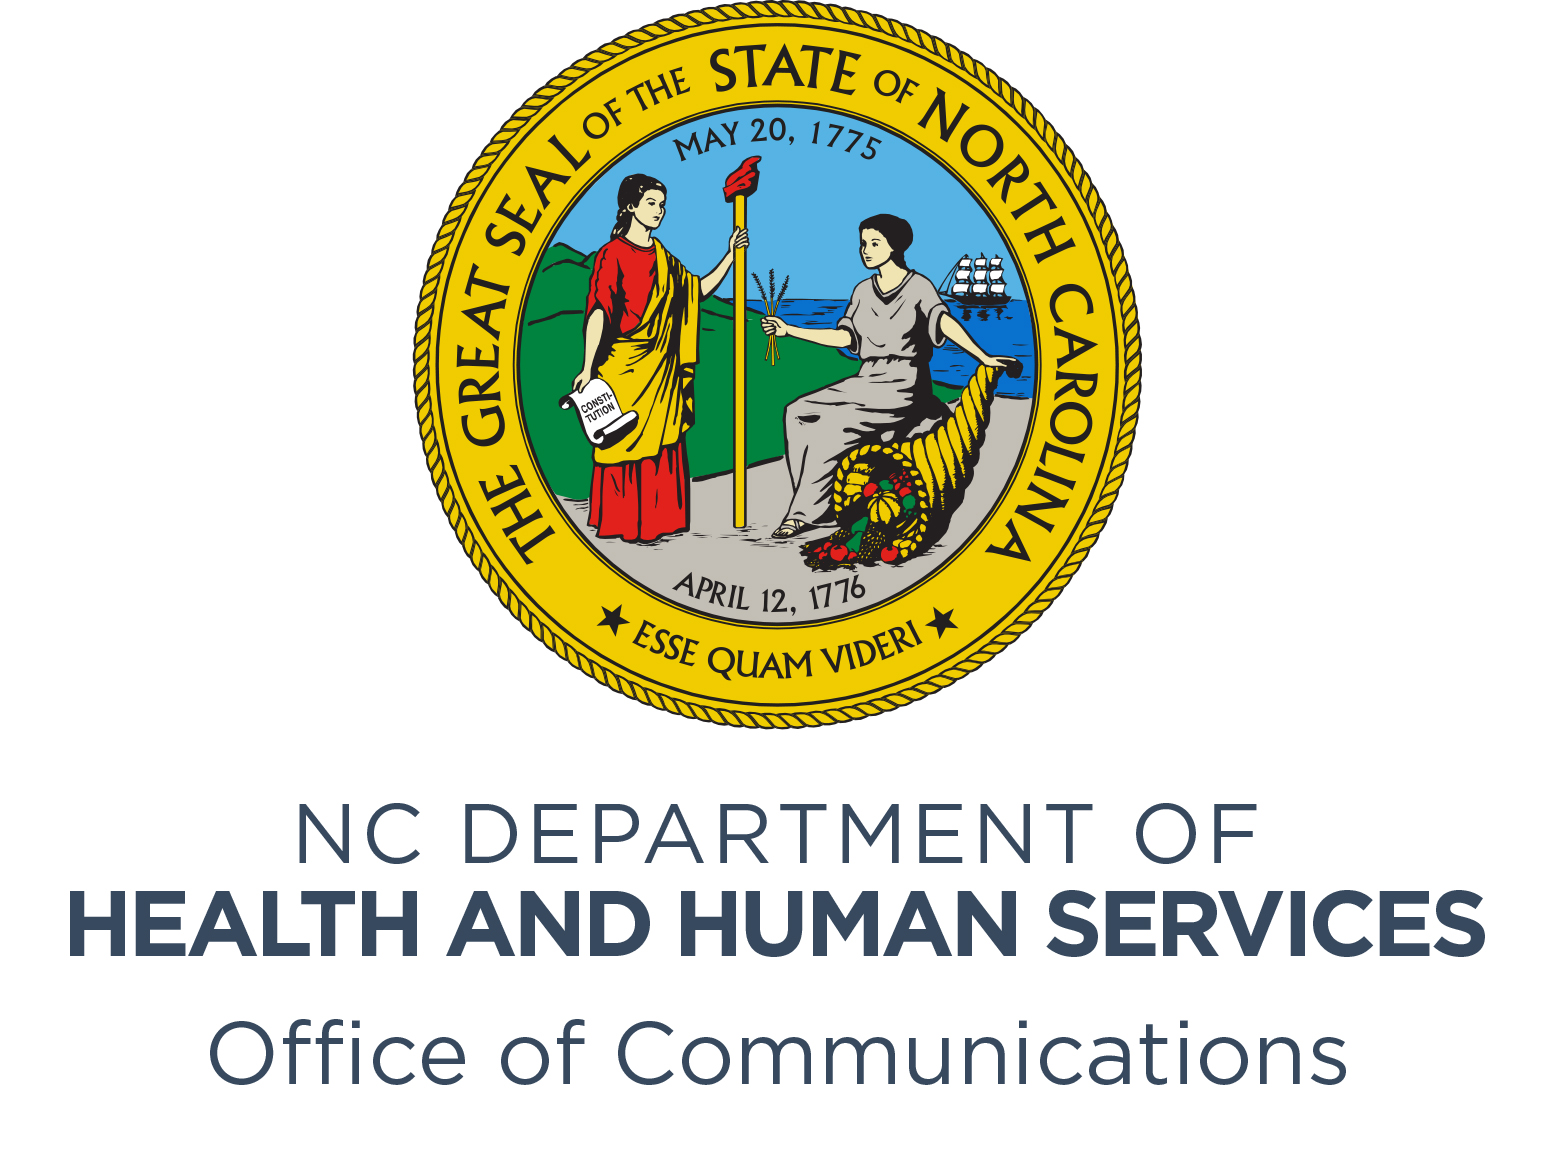 NCDHHS: New Logos, Brand Guidance Now Available for DHHS